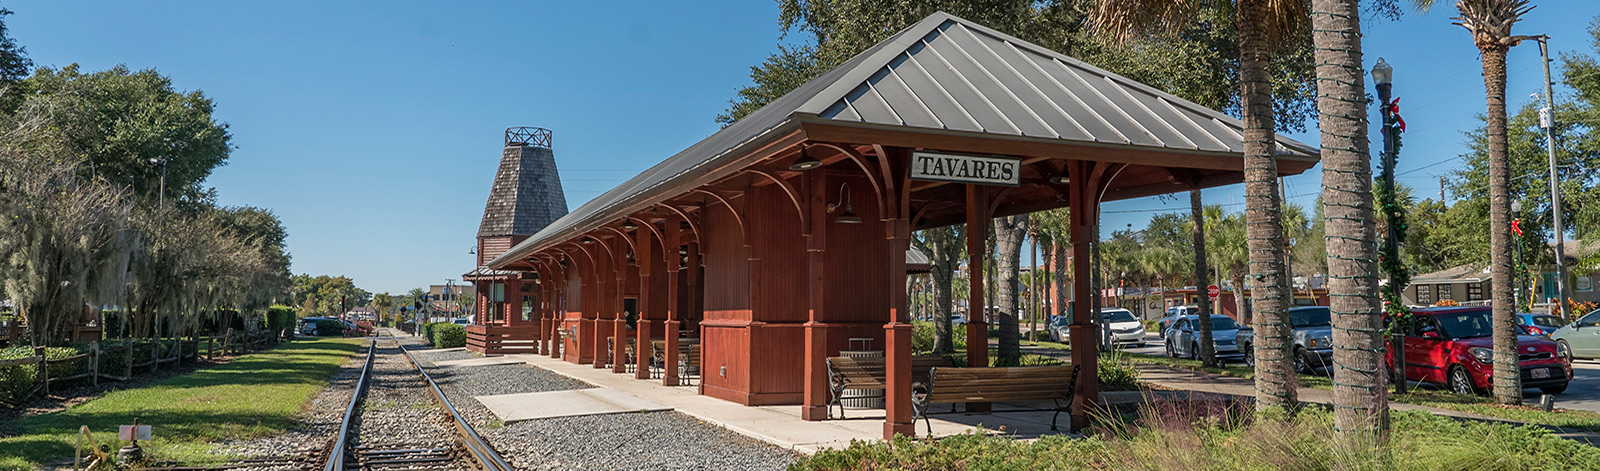 train station in Tavares